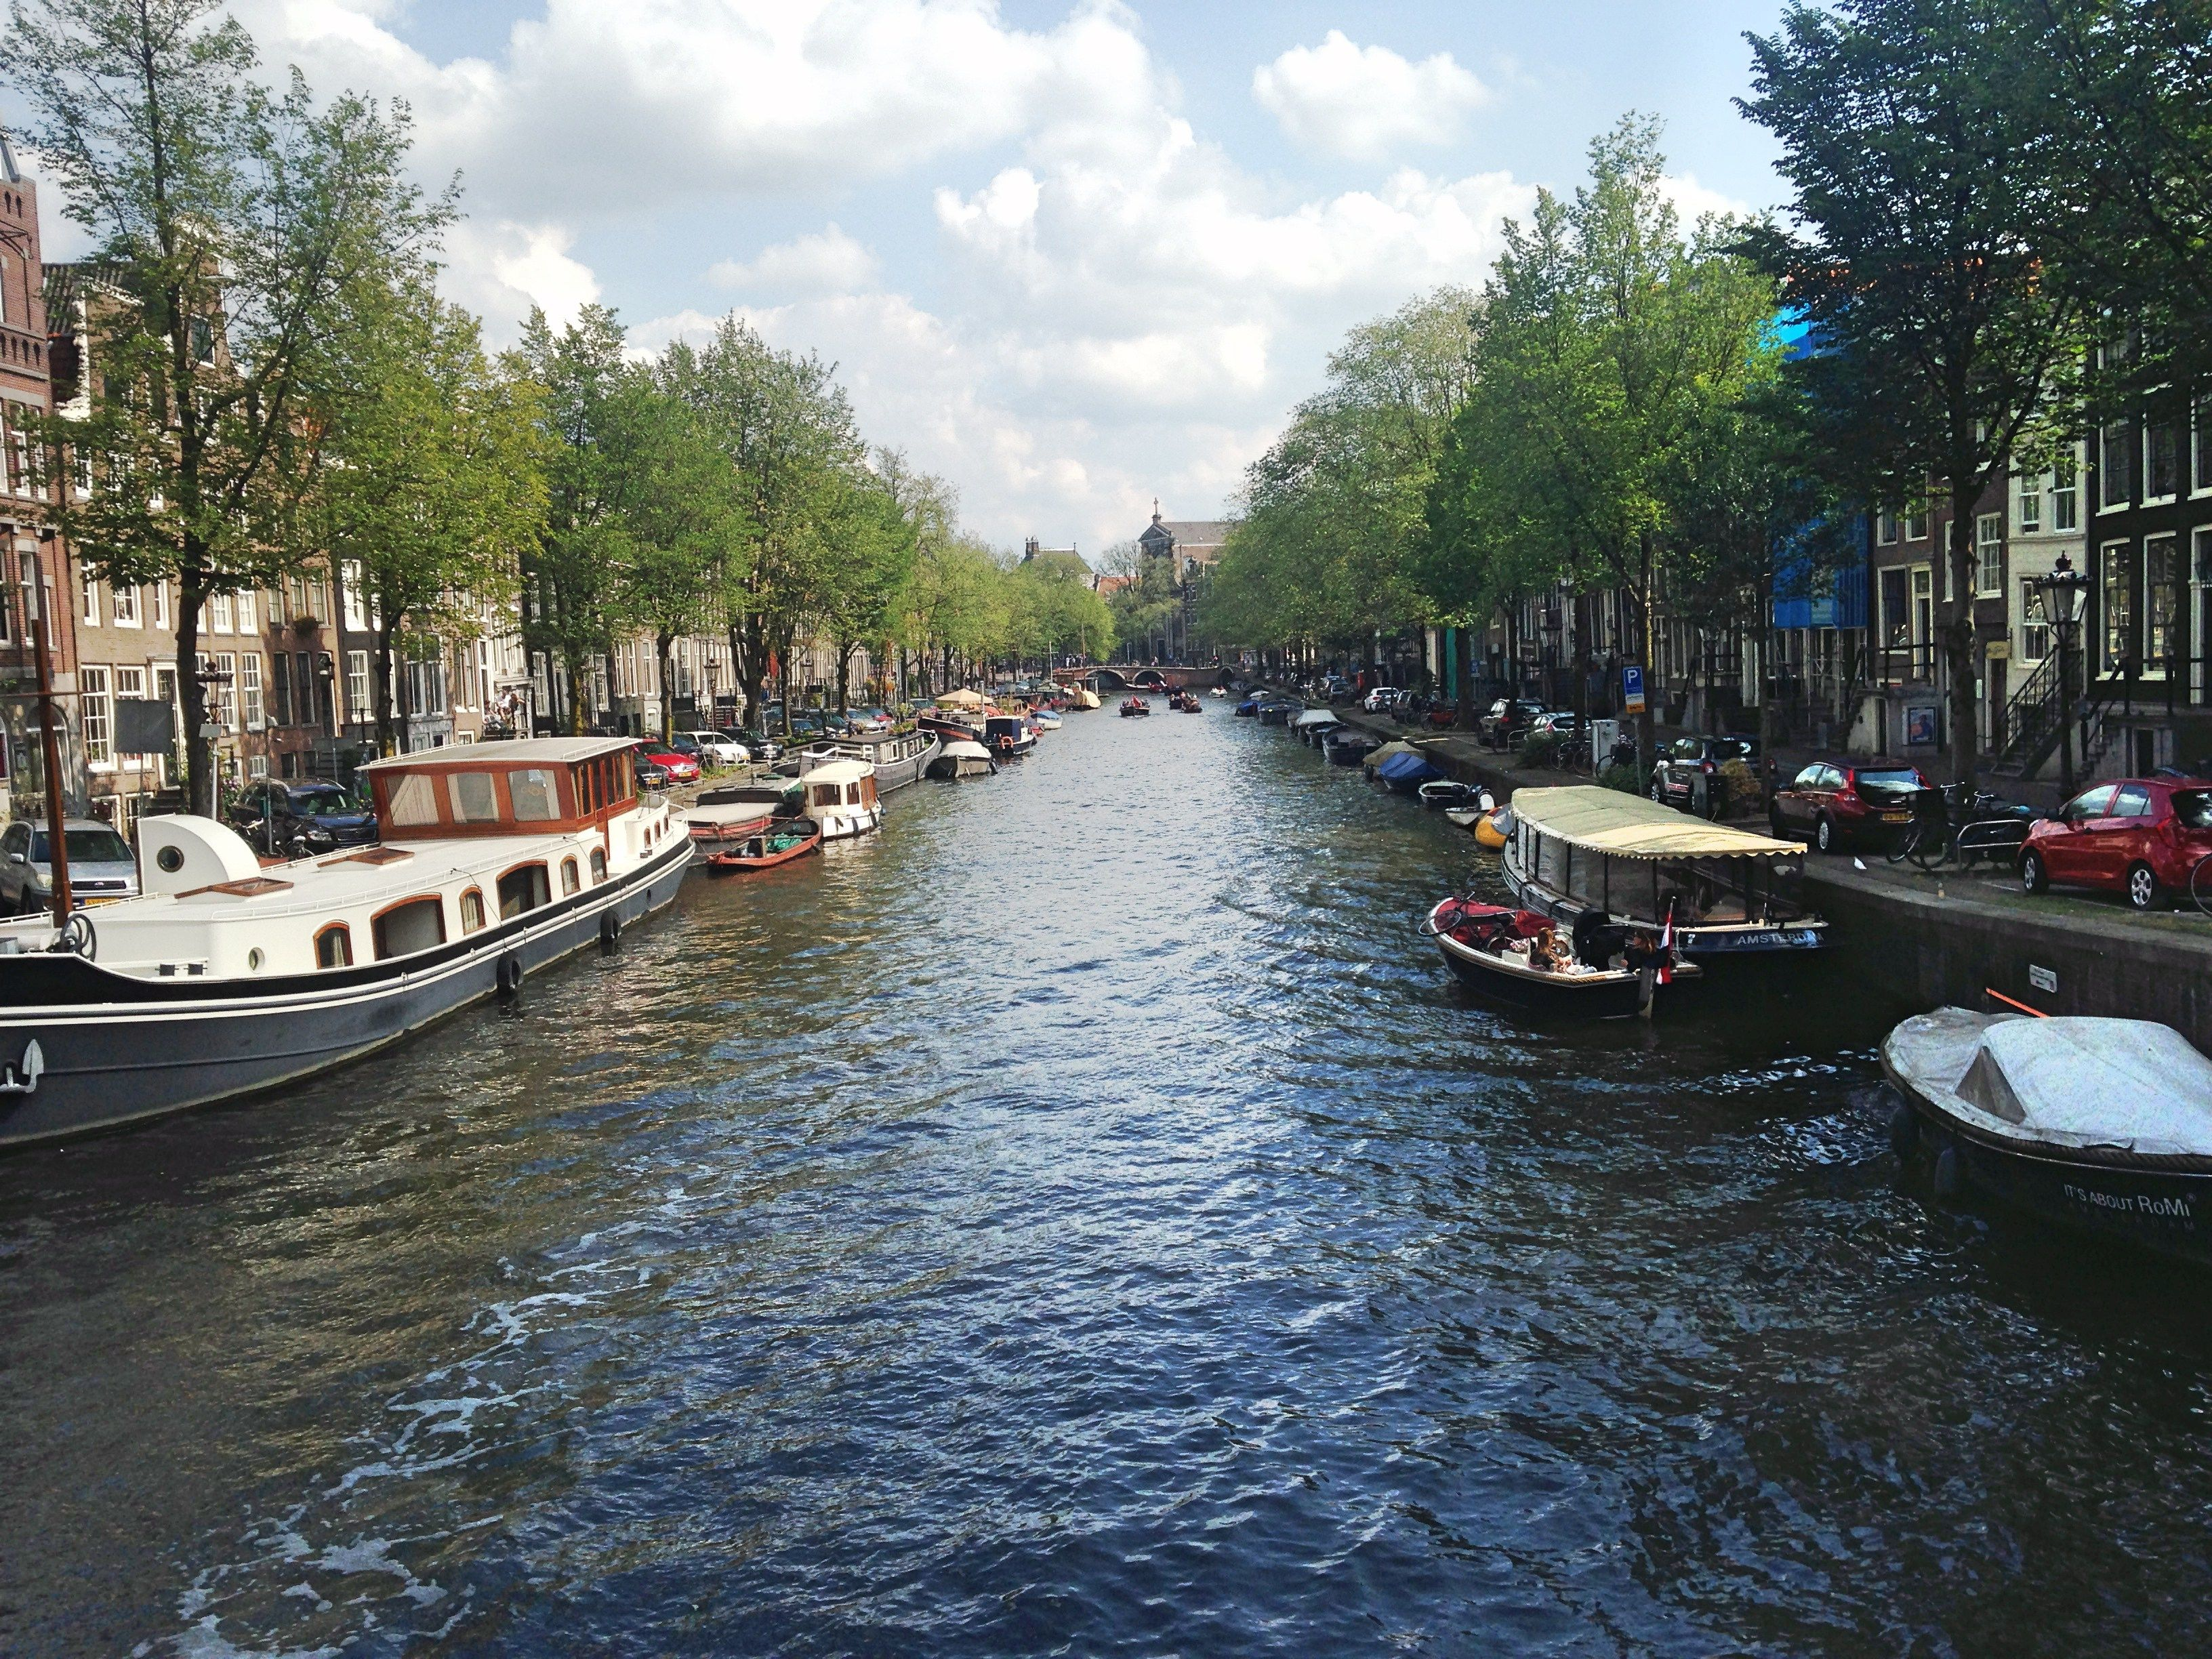 48 hours in Amsterdam (With images) Family travel